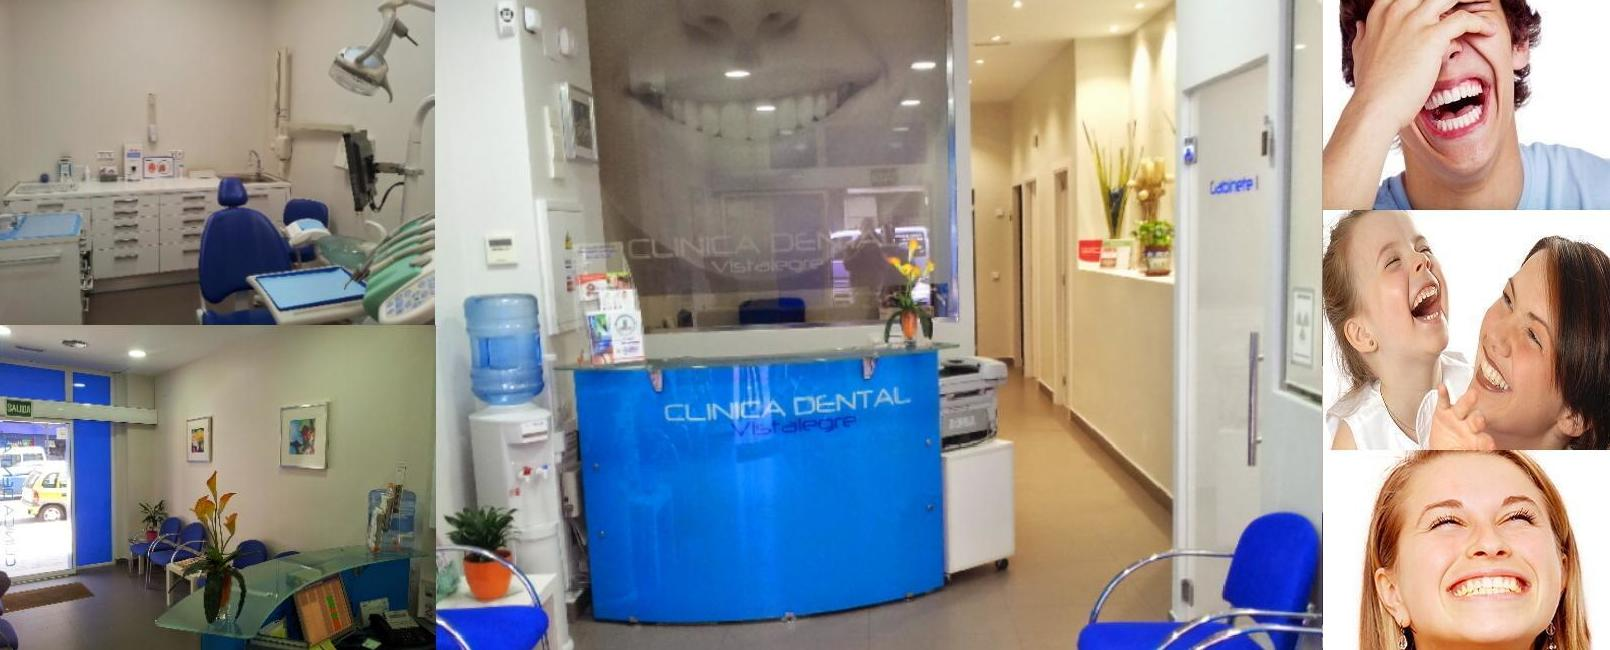 Foto 2 de Dentistas en Madrid | Clínica Dental Vistalegre